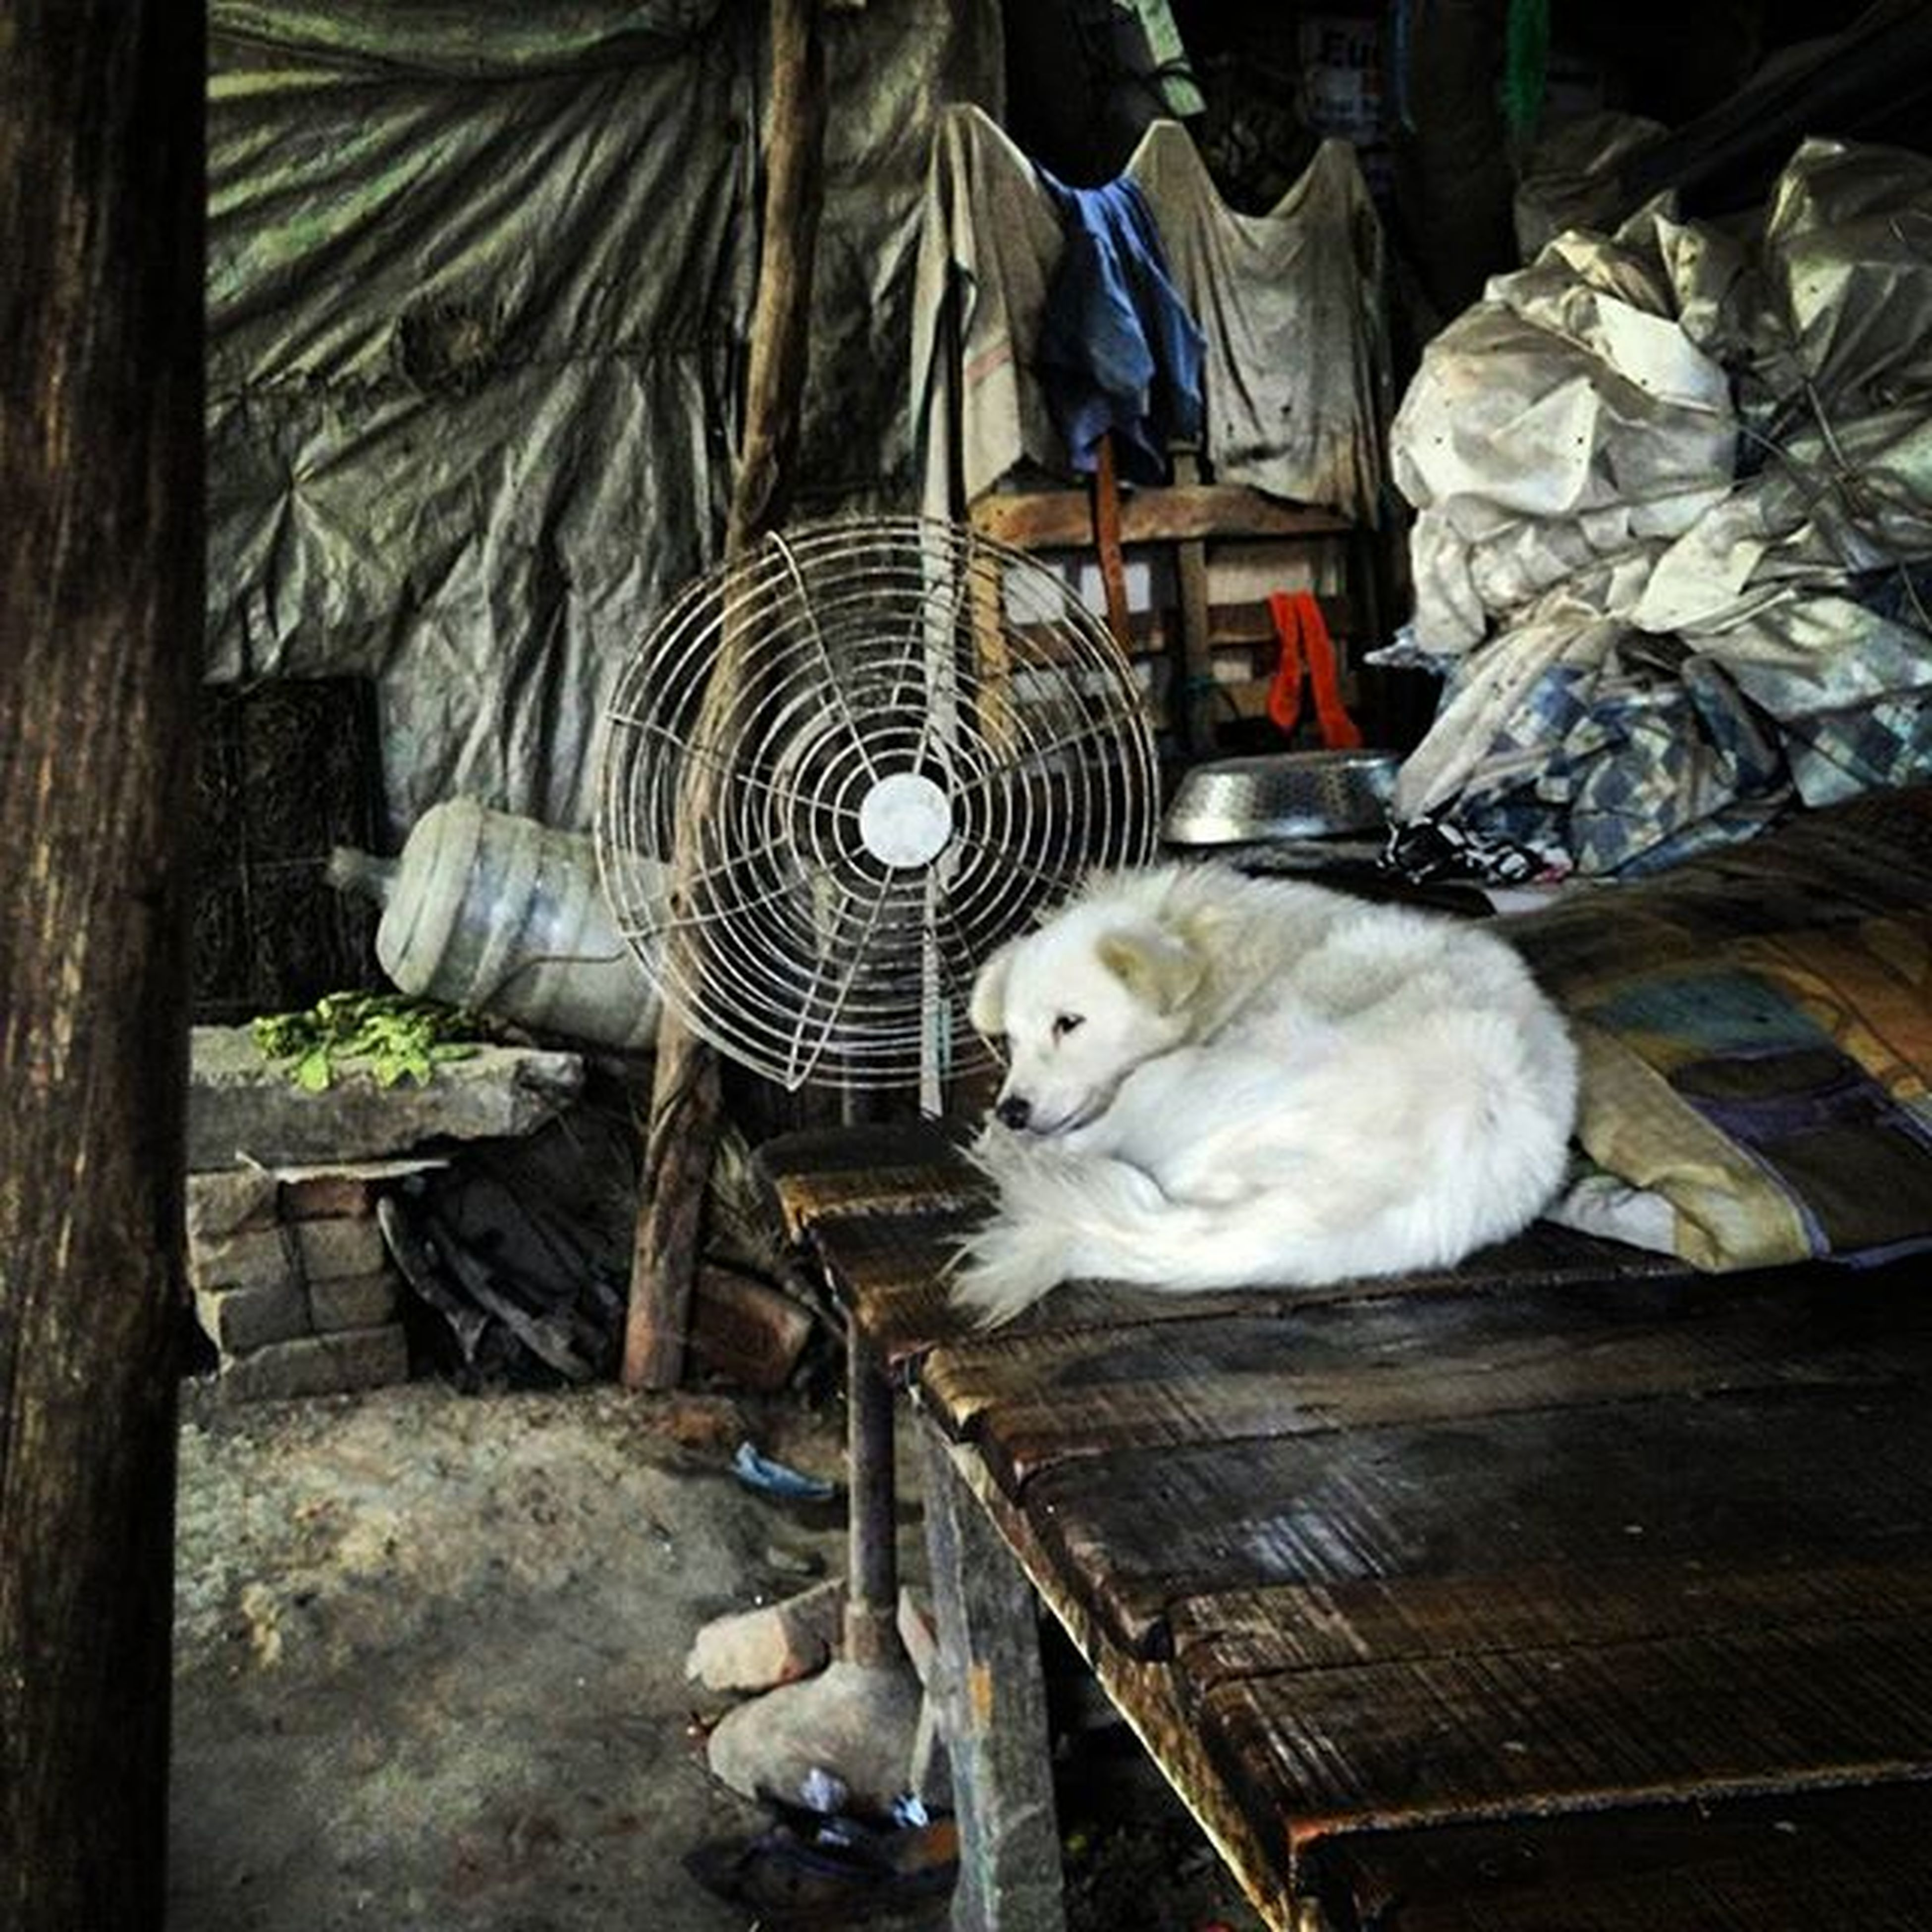 domestic animals, animal themes, pets, mammal, one animal, indoors, cat, domestic cat, relaxation, white color, sleeping, full length, no people, wood - material, high angle view, day, resting, feline, sitting